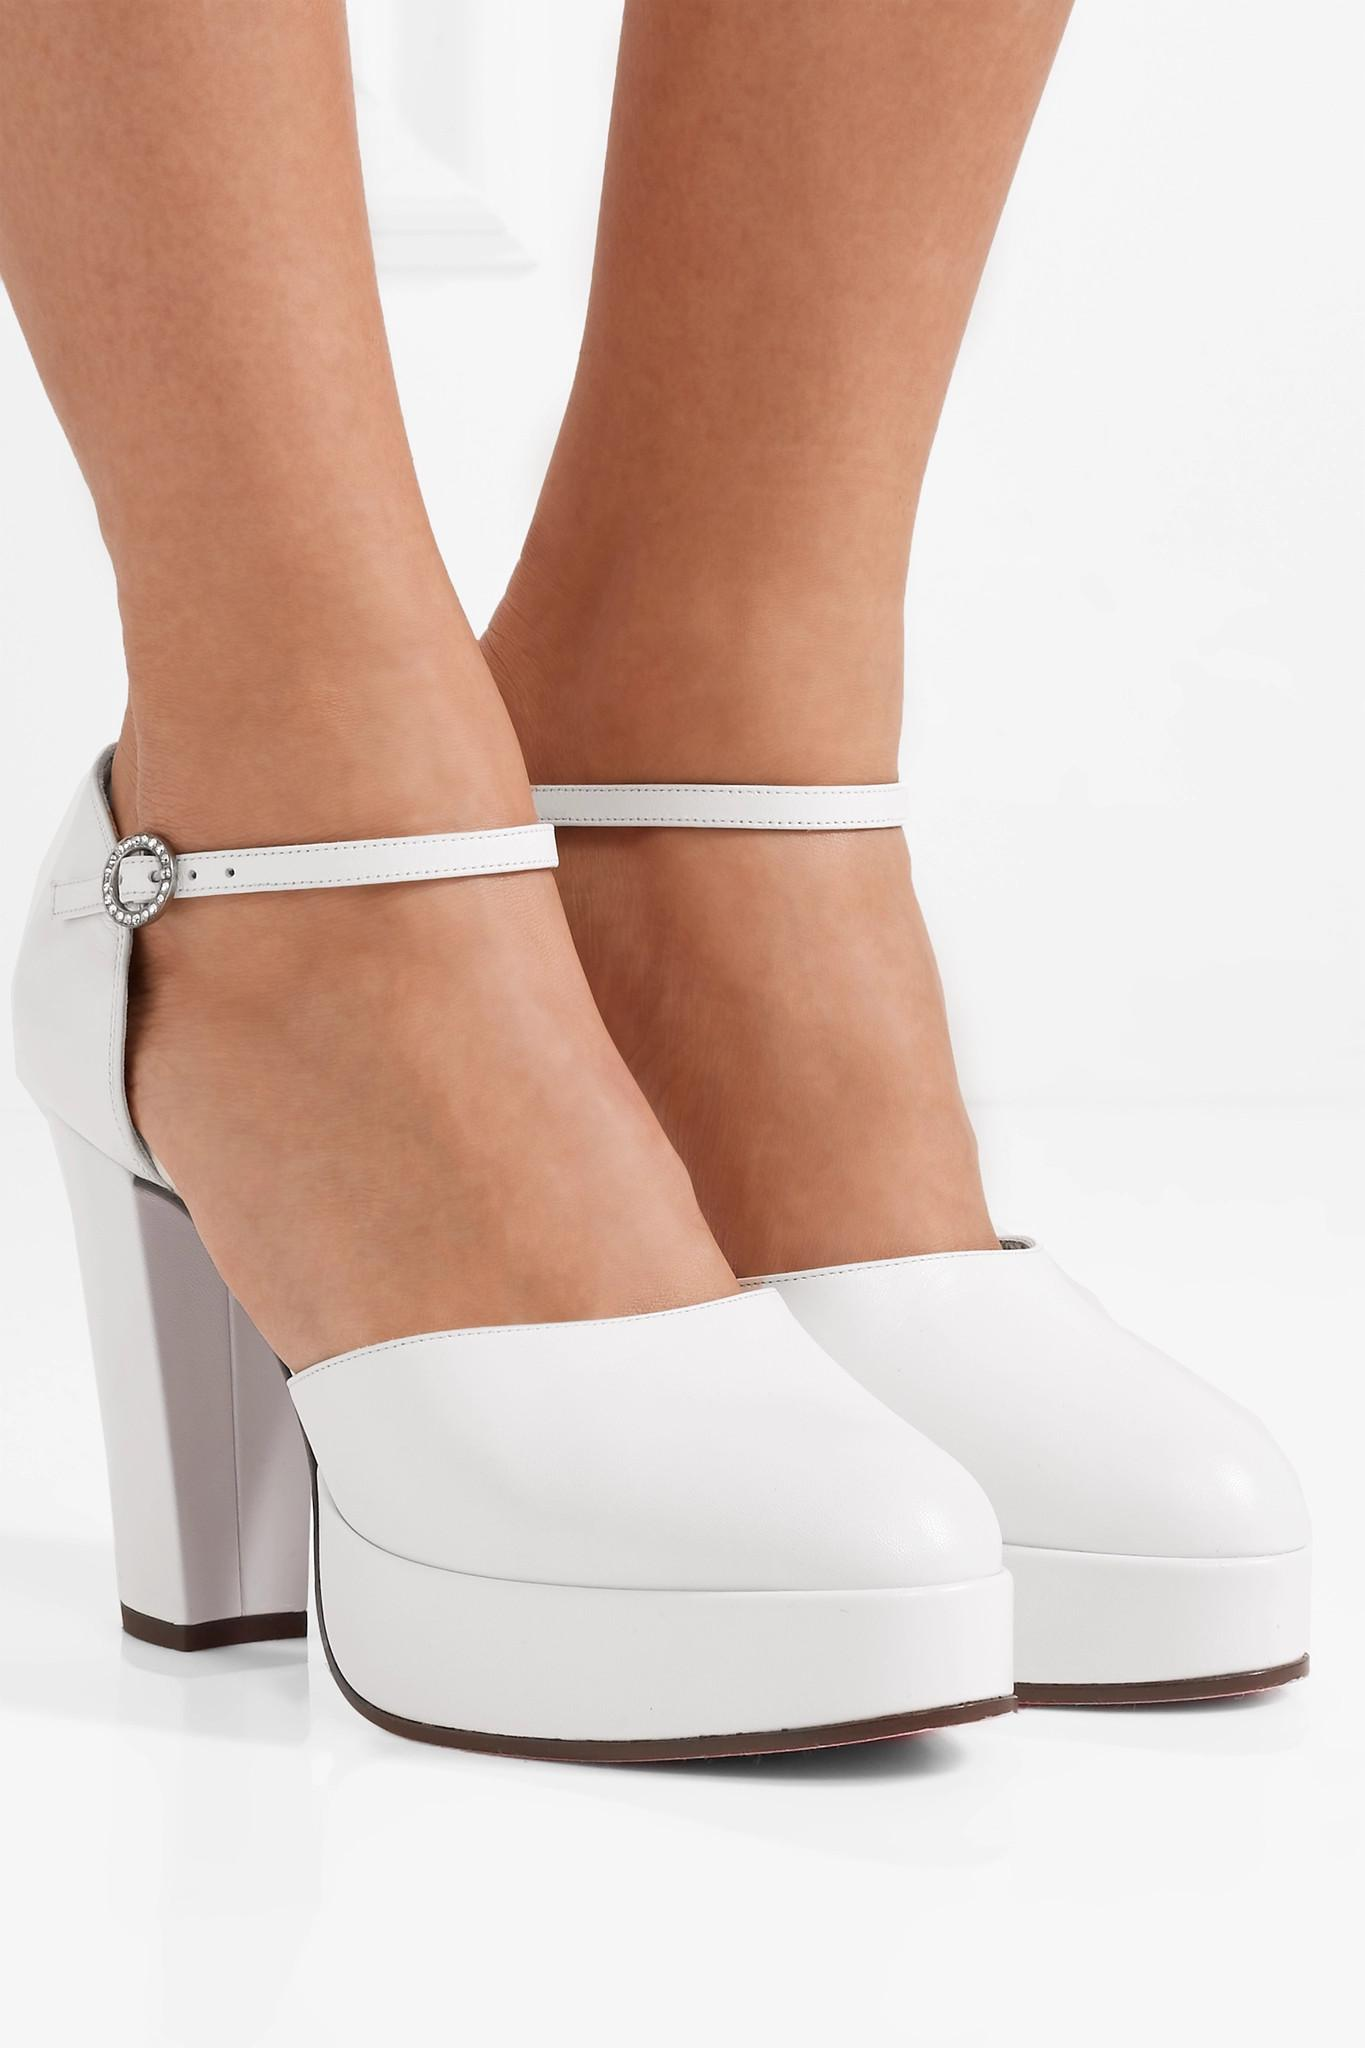 8a068b29b94 Gucci - White Embellished Platform Pumps - Lyst. View fullscreen